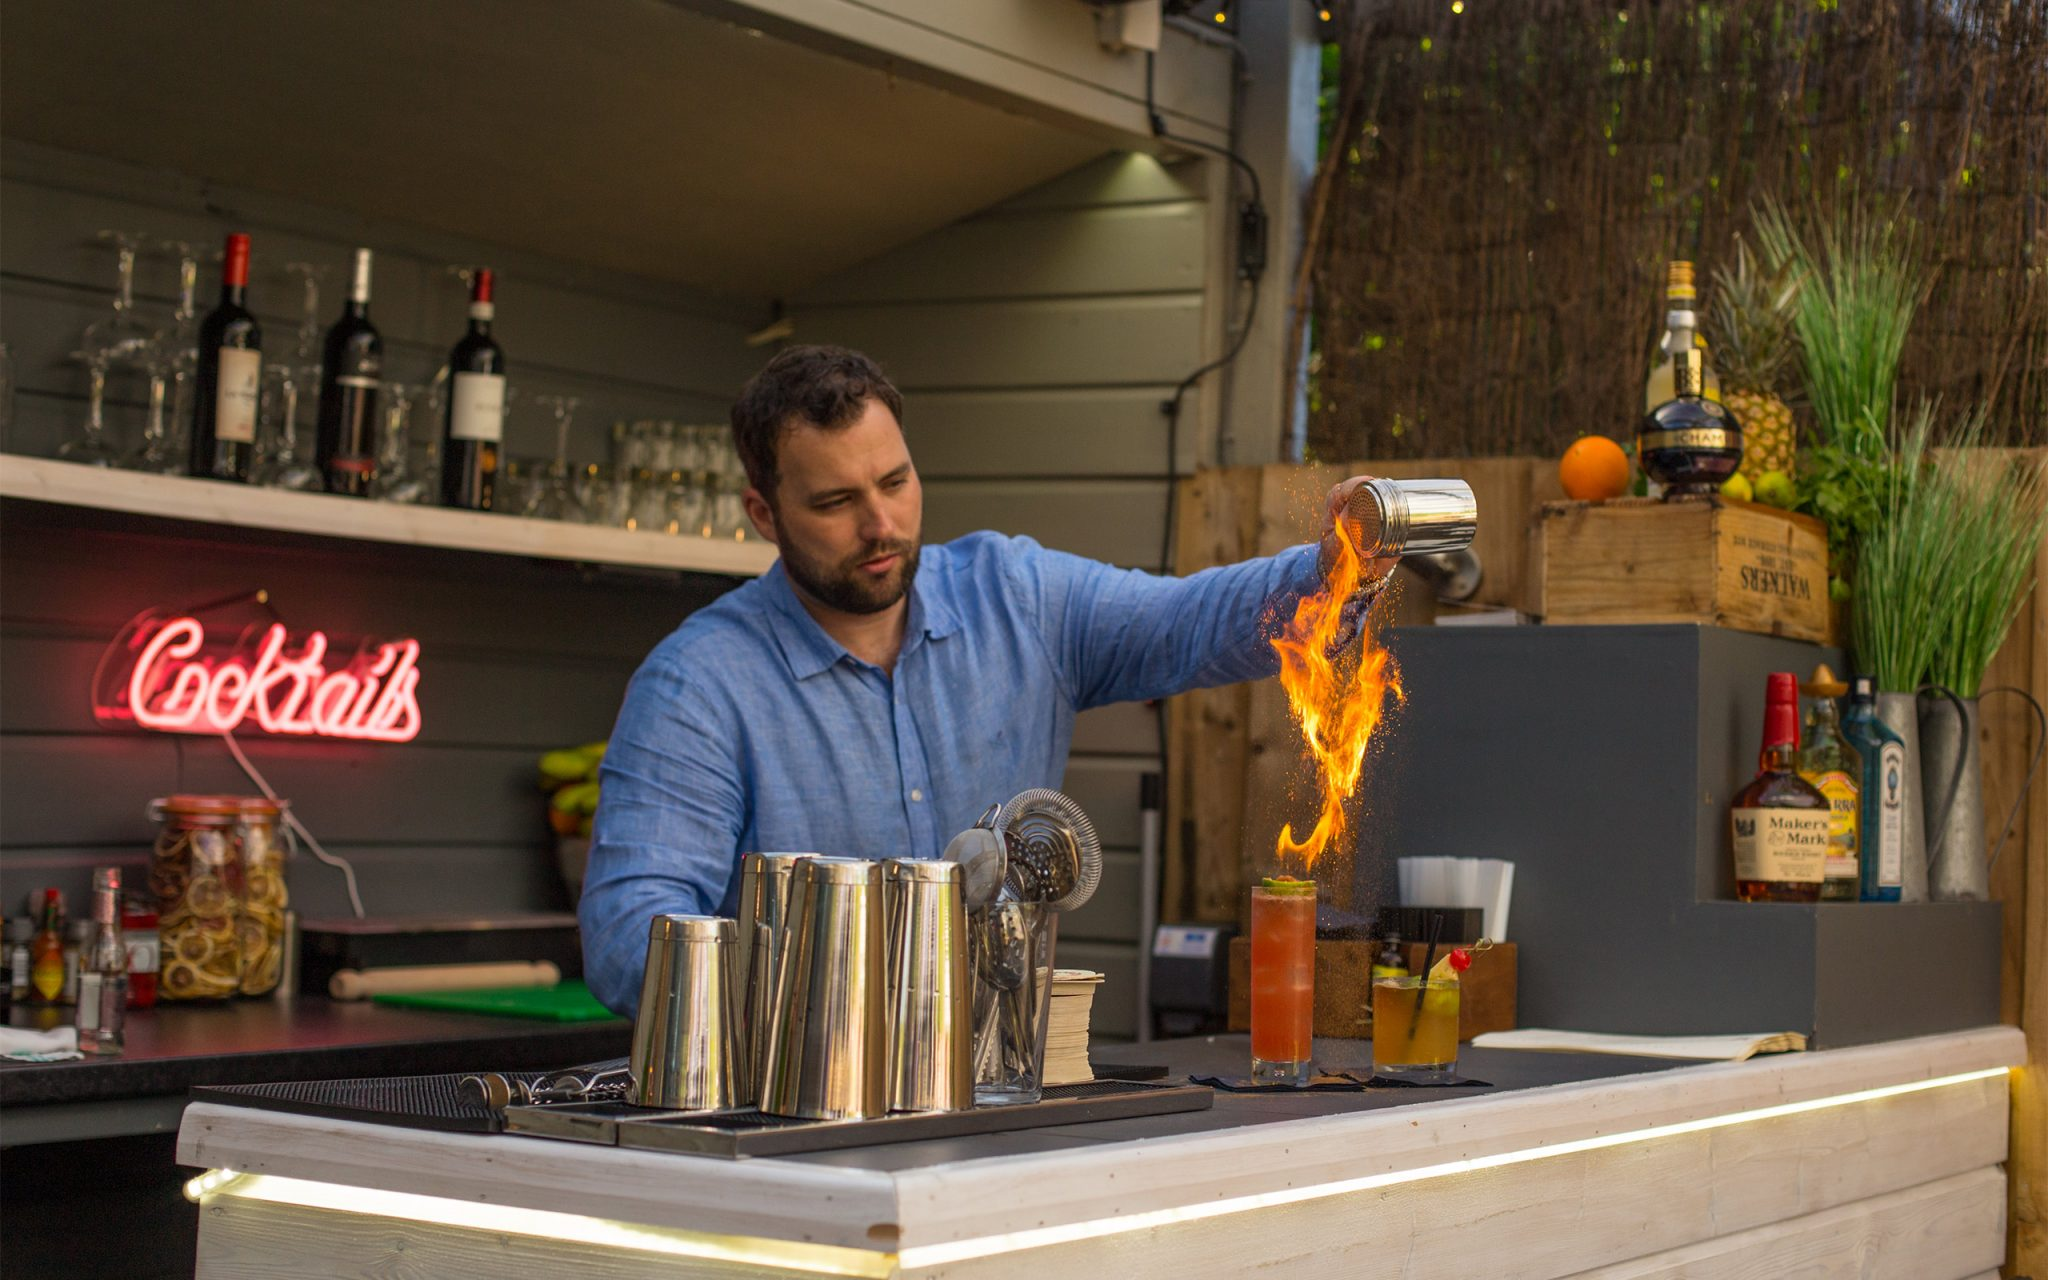 Fire Cocktail, Zombie cocktail, Fireball Cocktail, Wildfire Cocktail, Cott Inn, Dartington, Devon, English Country Pub, English Country Inn, Winner, Best British Pub, WINNER OF THE GREAT BRITISH PUB AWARDS 2019, Carey Marks Photography